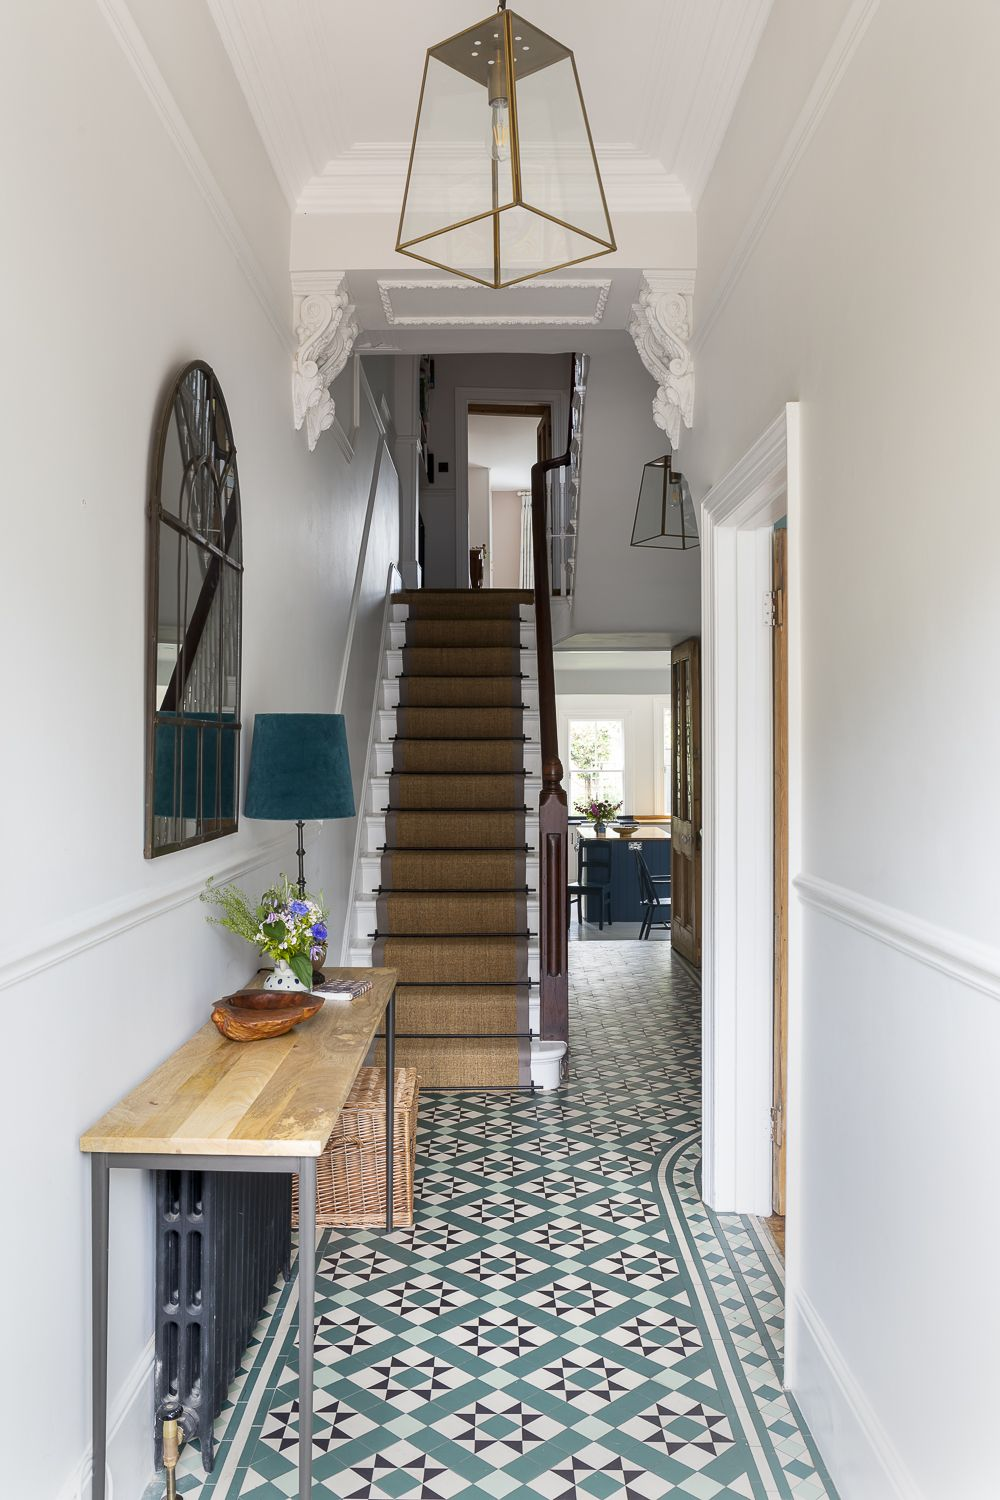 Victorian House Interior Designs In 2019: Interior Design & Styling In This Large 5 Bedroom